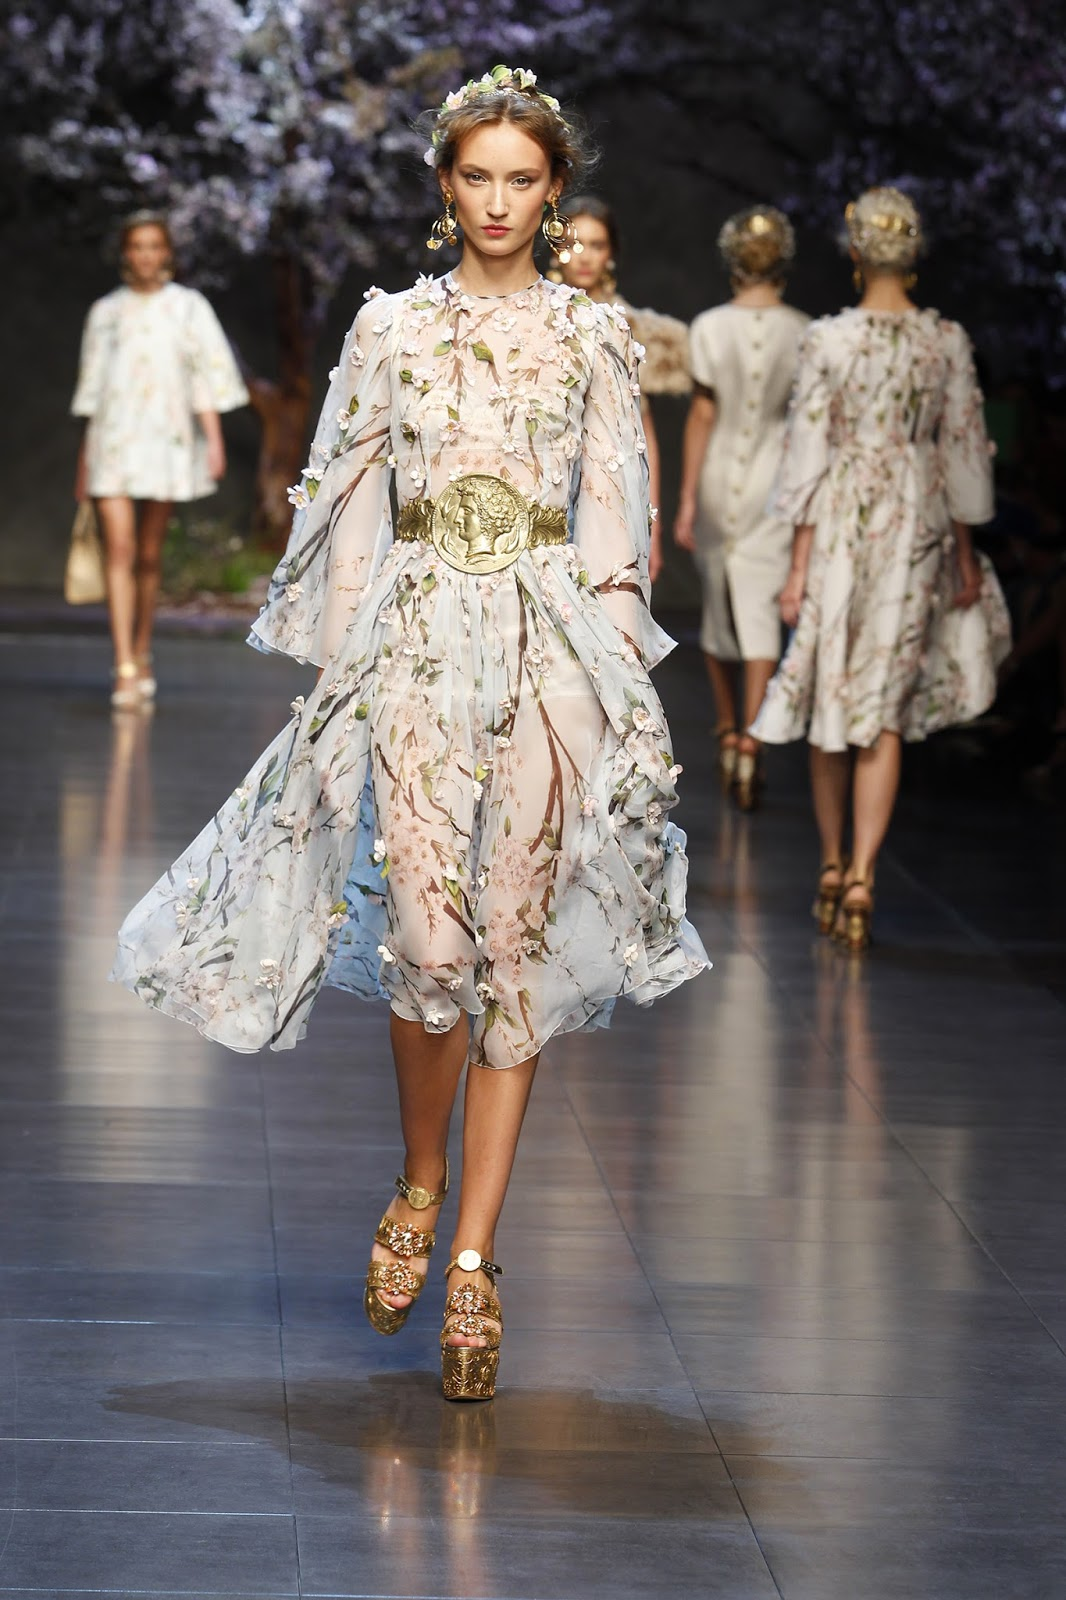 b55ccf8089 mylifestylenews  DOLCE GABBANA   2014 Summer Women  39 s Visions Amongst  Temples in Ancient Dolce   Gabbana Spring